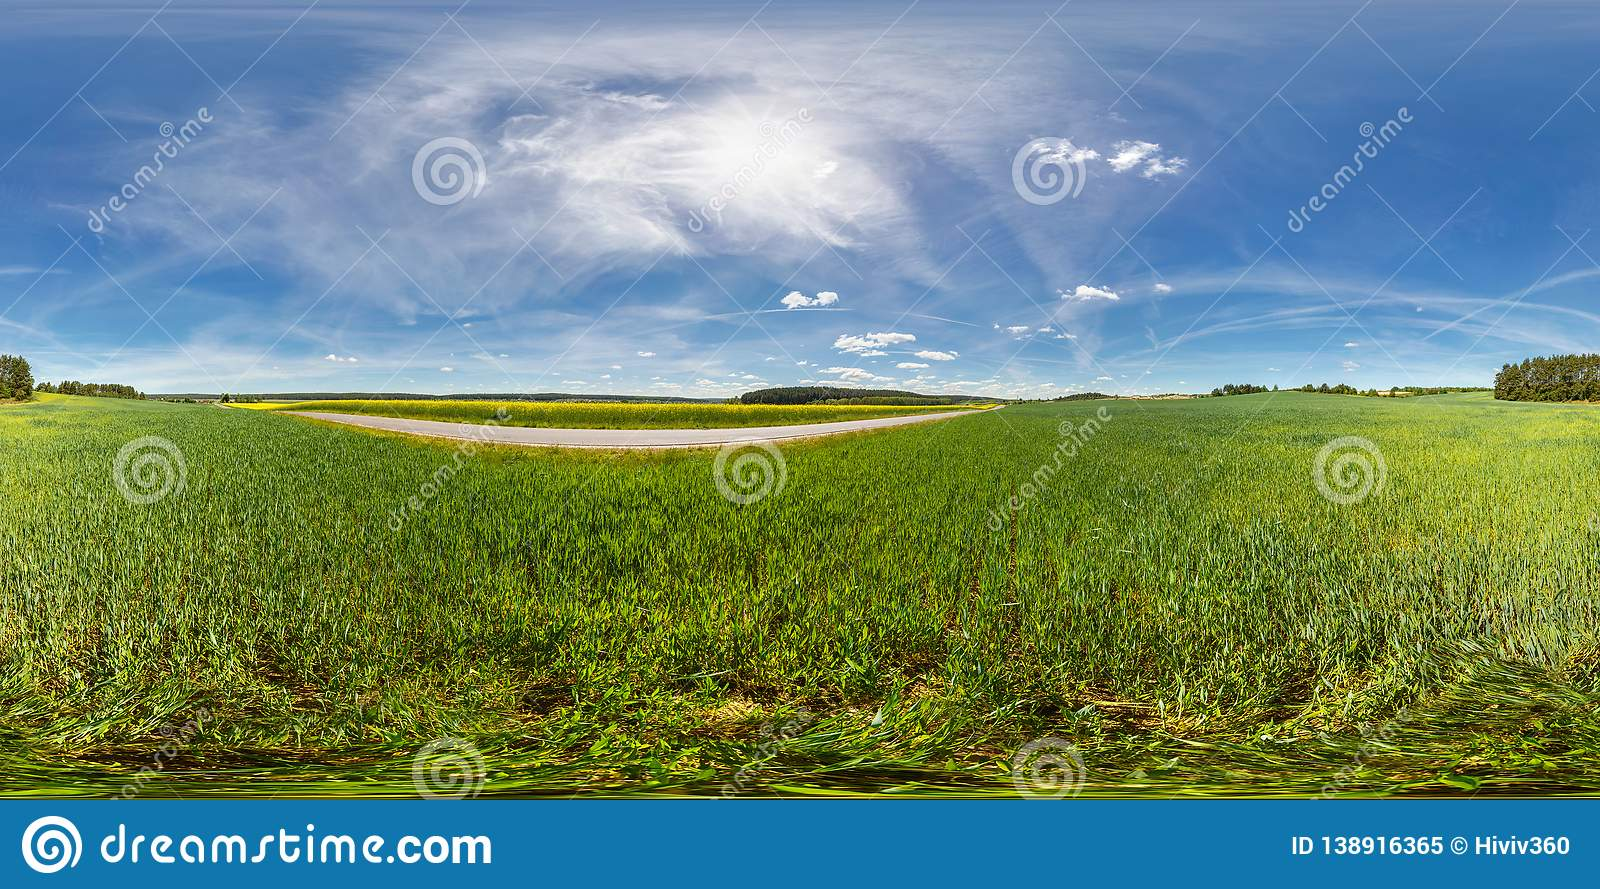 Full 360 degree seamless panorama in equirectangular spherical equidistant projection. Panorama in a field near a road with